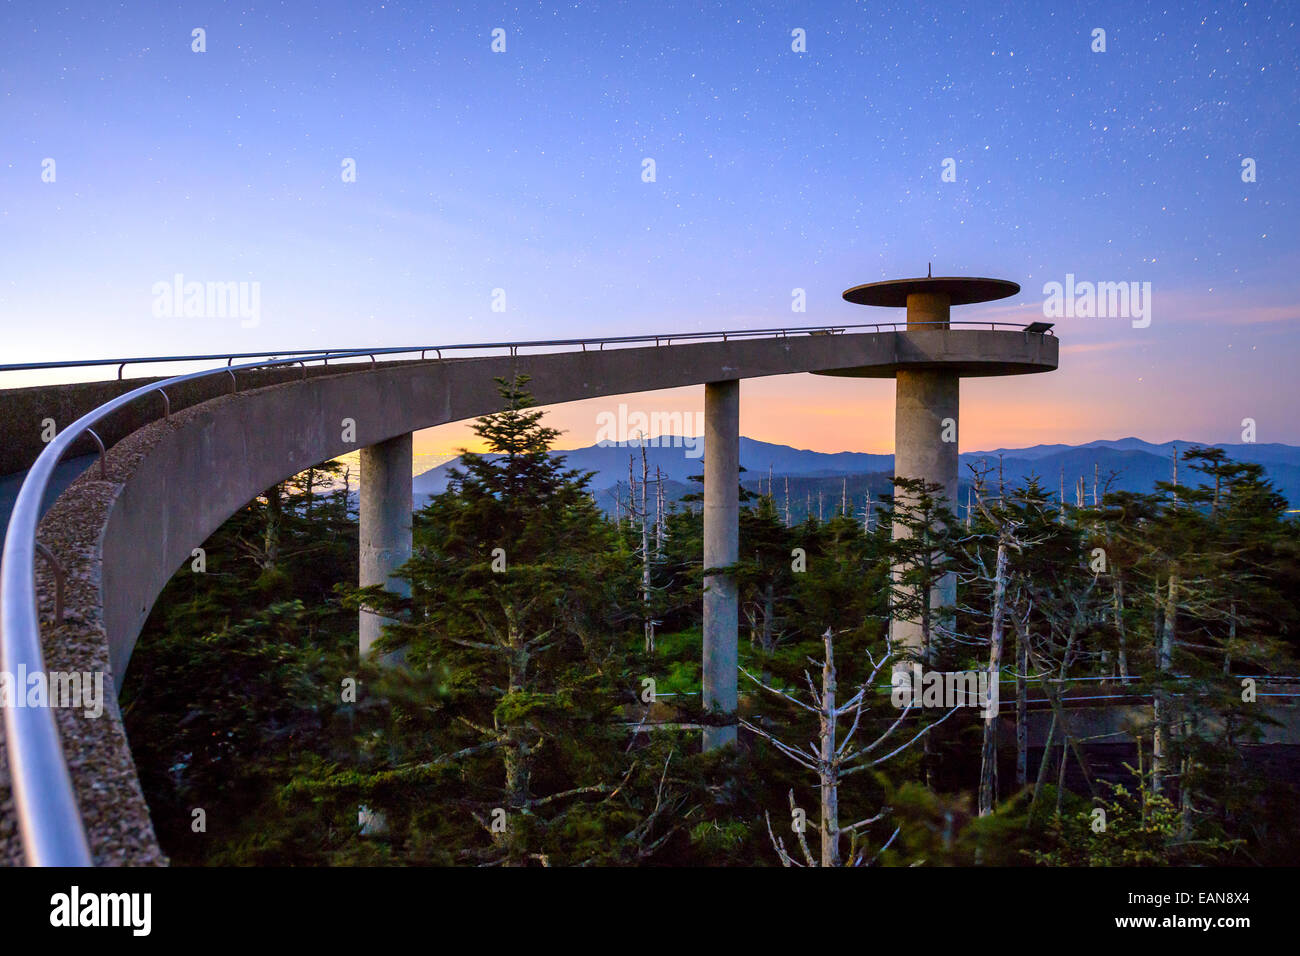 Clingman's Dome mountaintop observatory in the Great Smoky Mountains, Tennessee, USA. - Stock Image